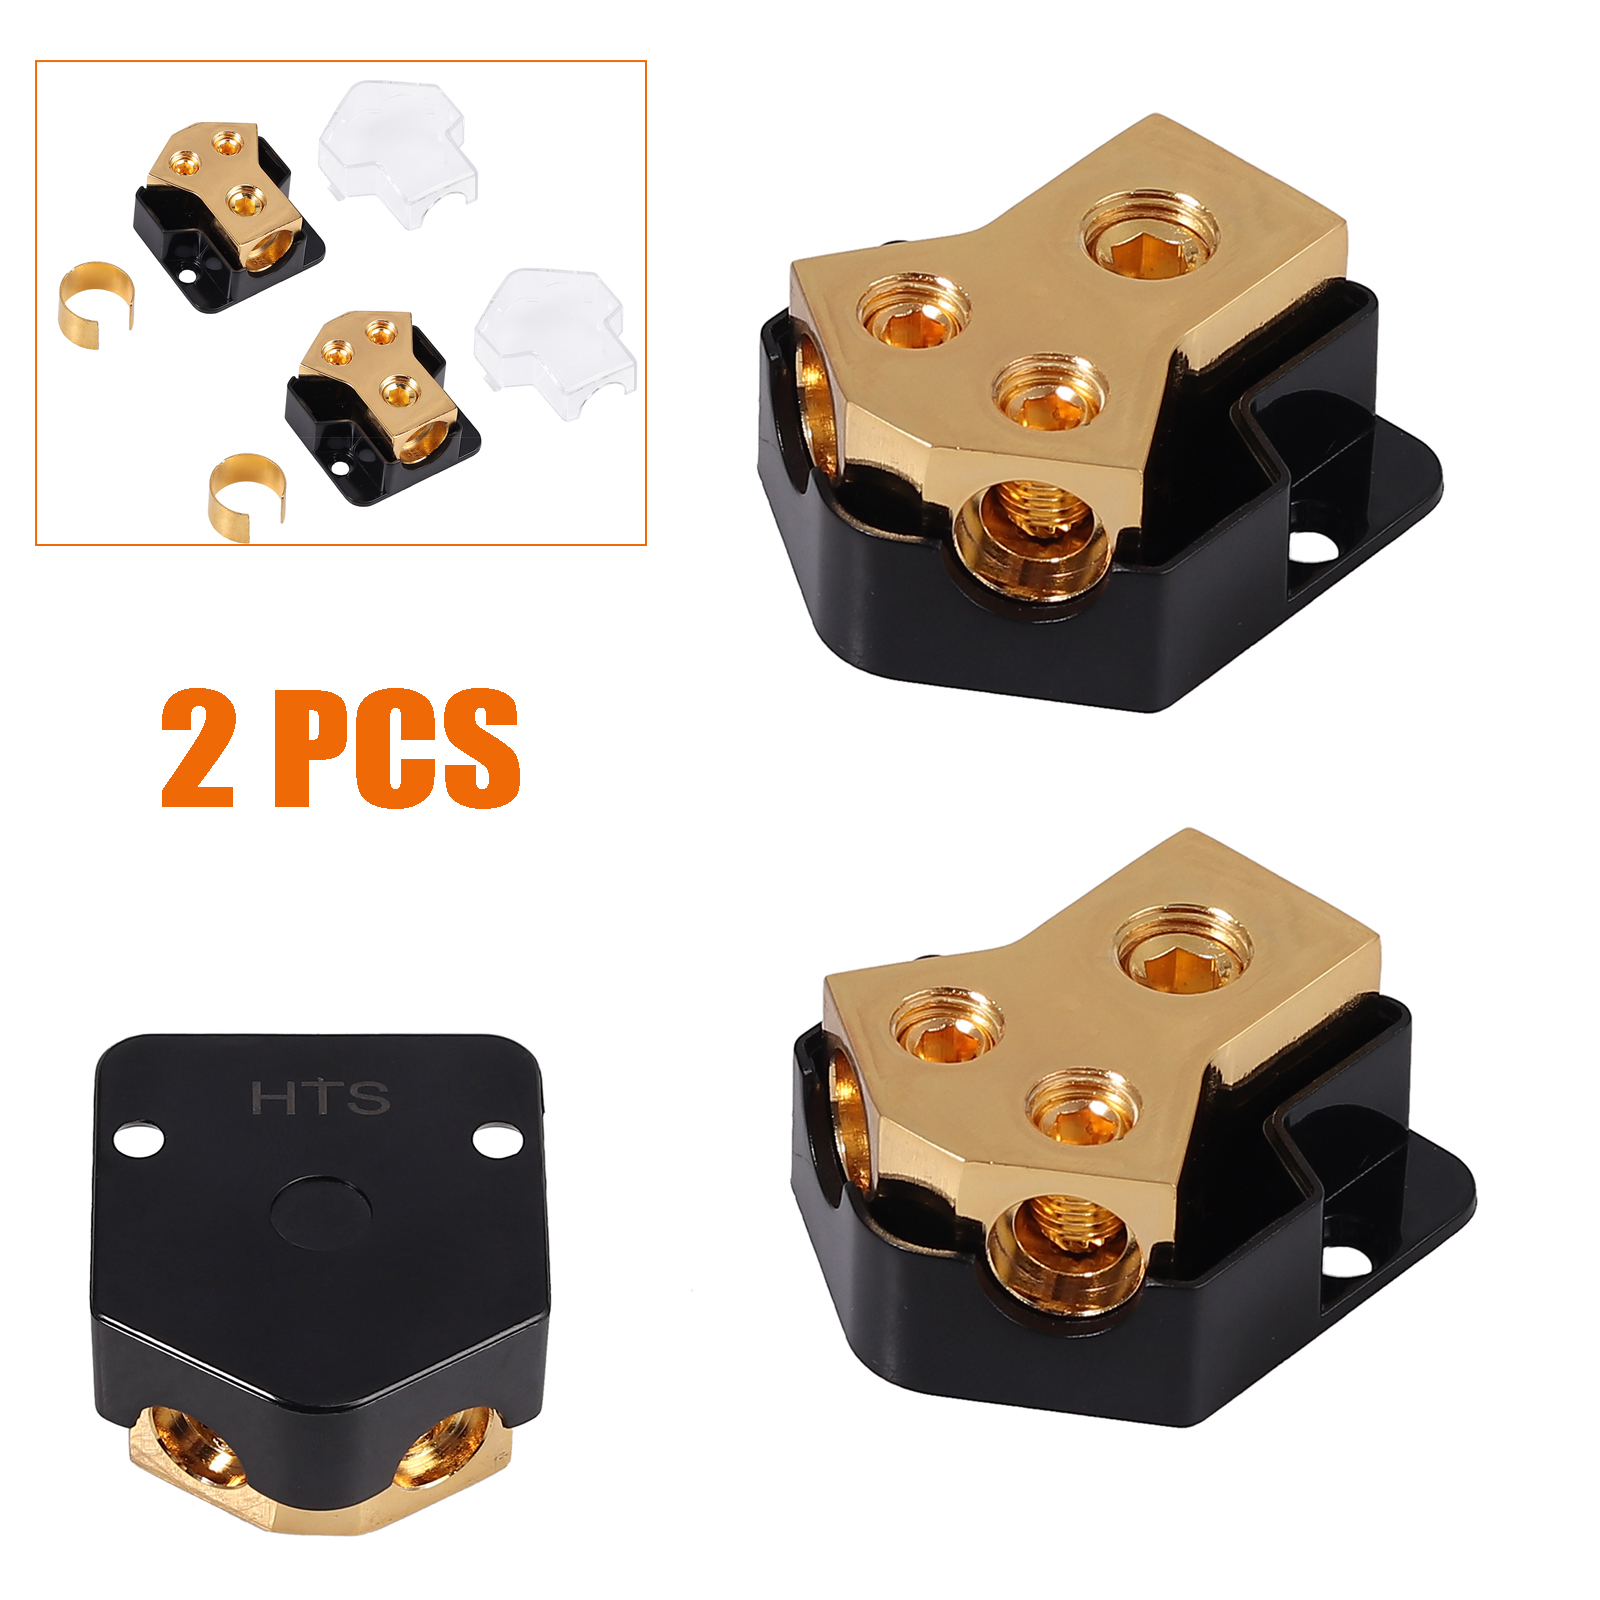 2PCS 0//2//4 Gauge in 4//8//10 Gauge Out 2 Way Amp Copper Power Distribution Block for Car Audio Splitter